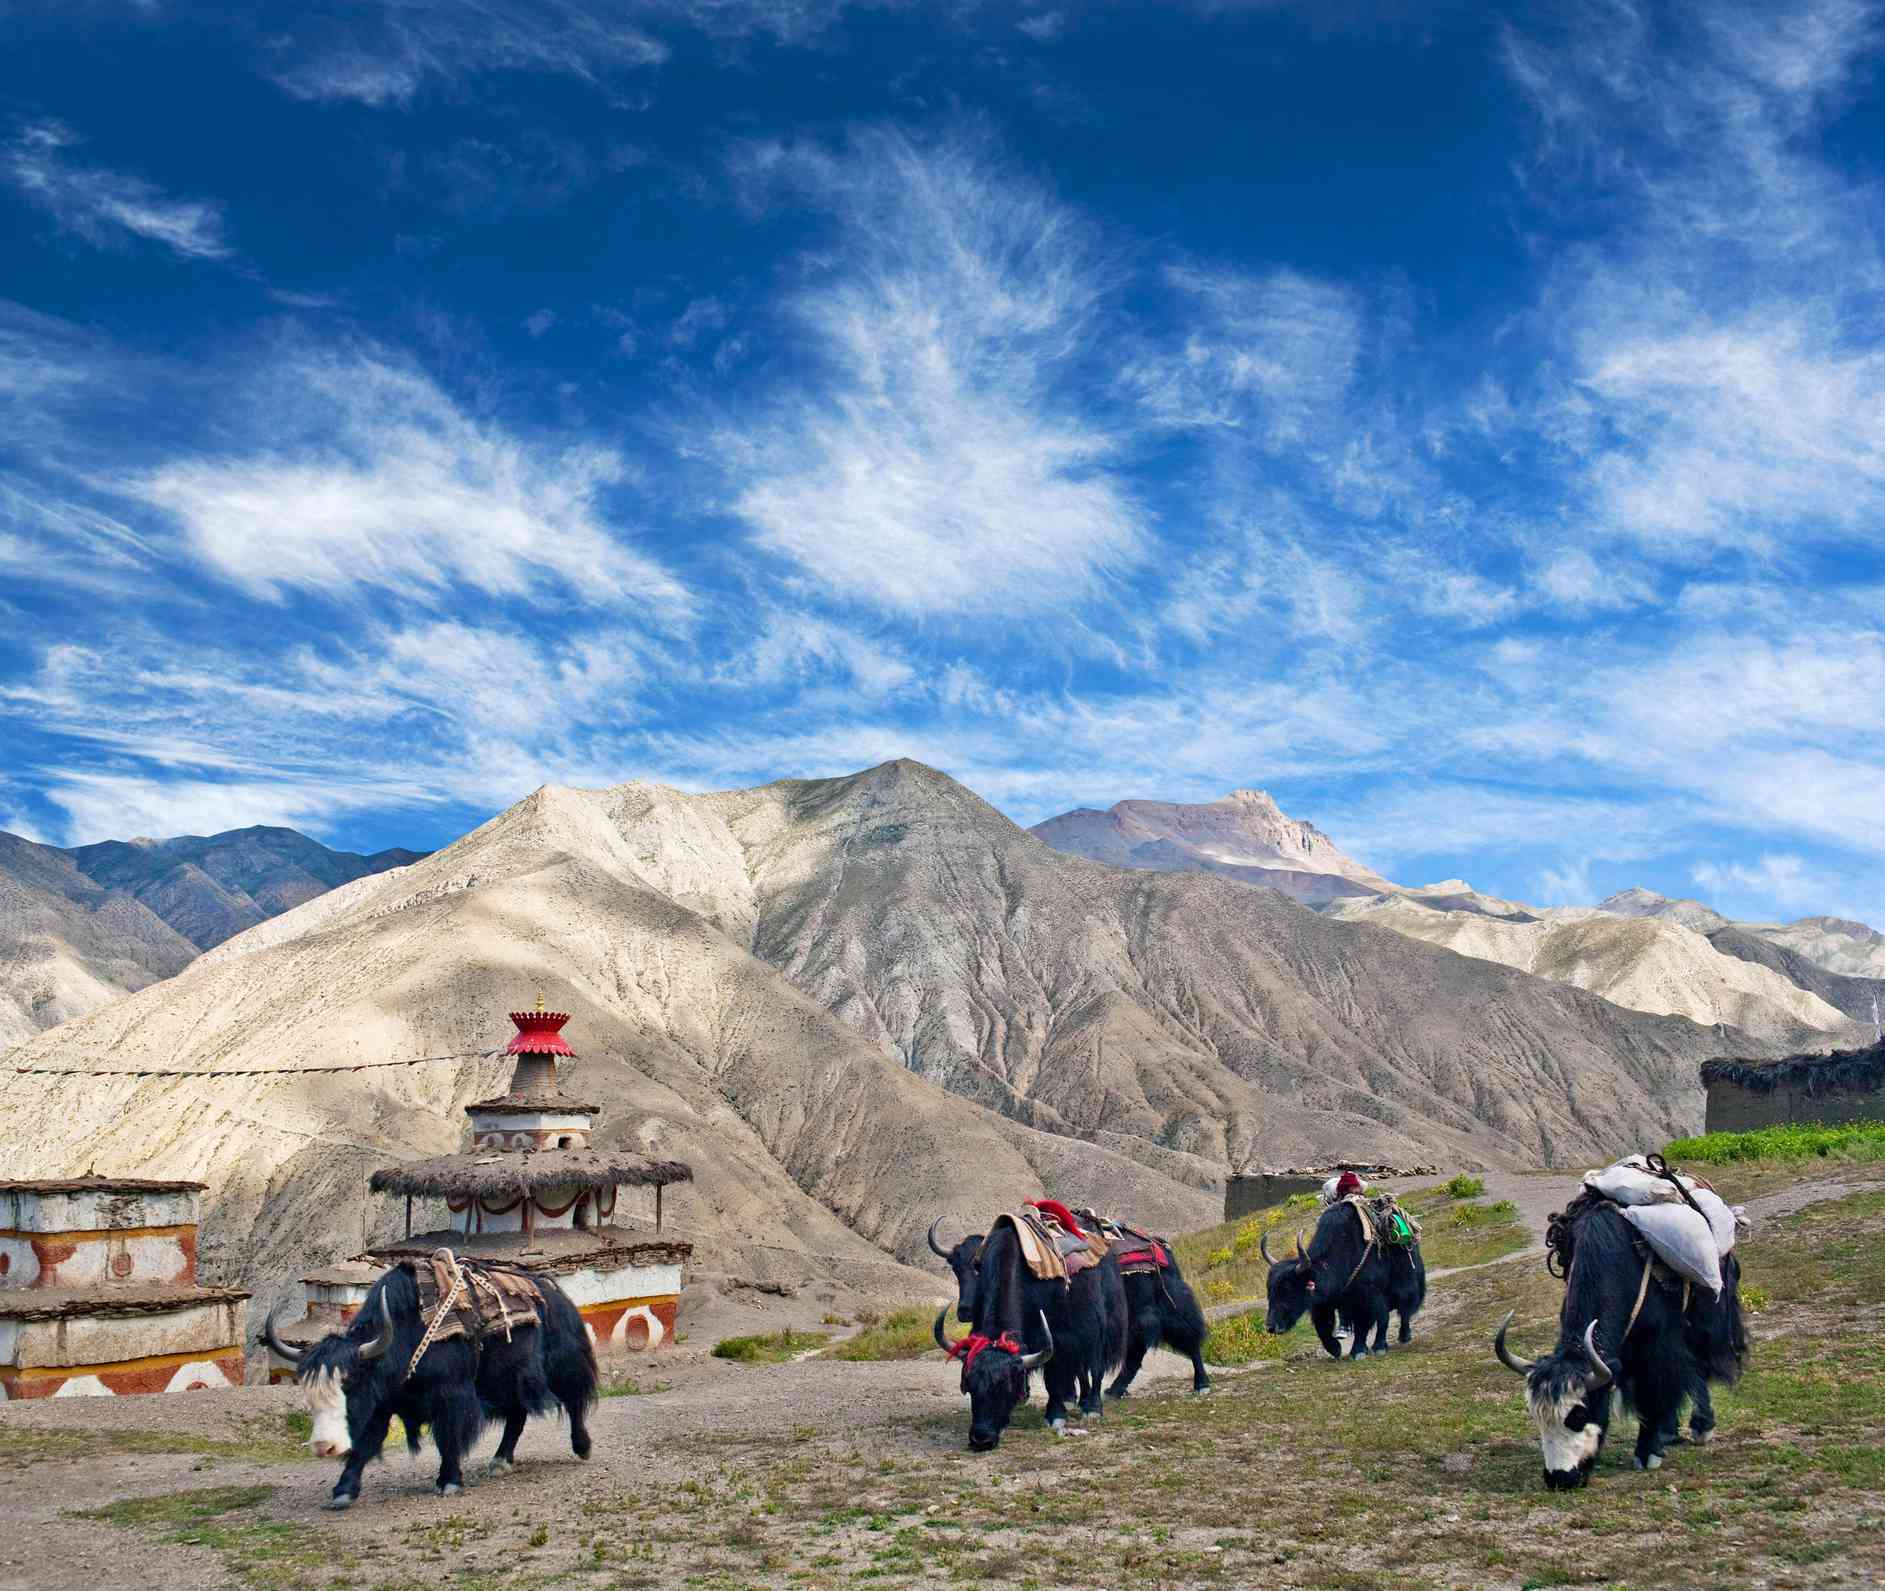 brown mountains with black yaks in foreground and ancient Buddhist stupas